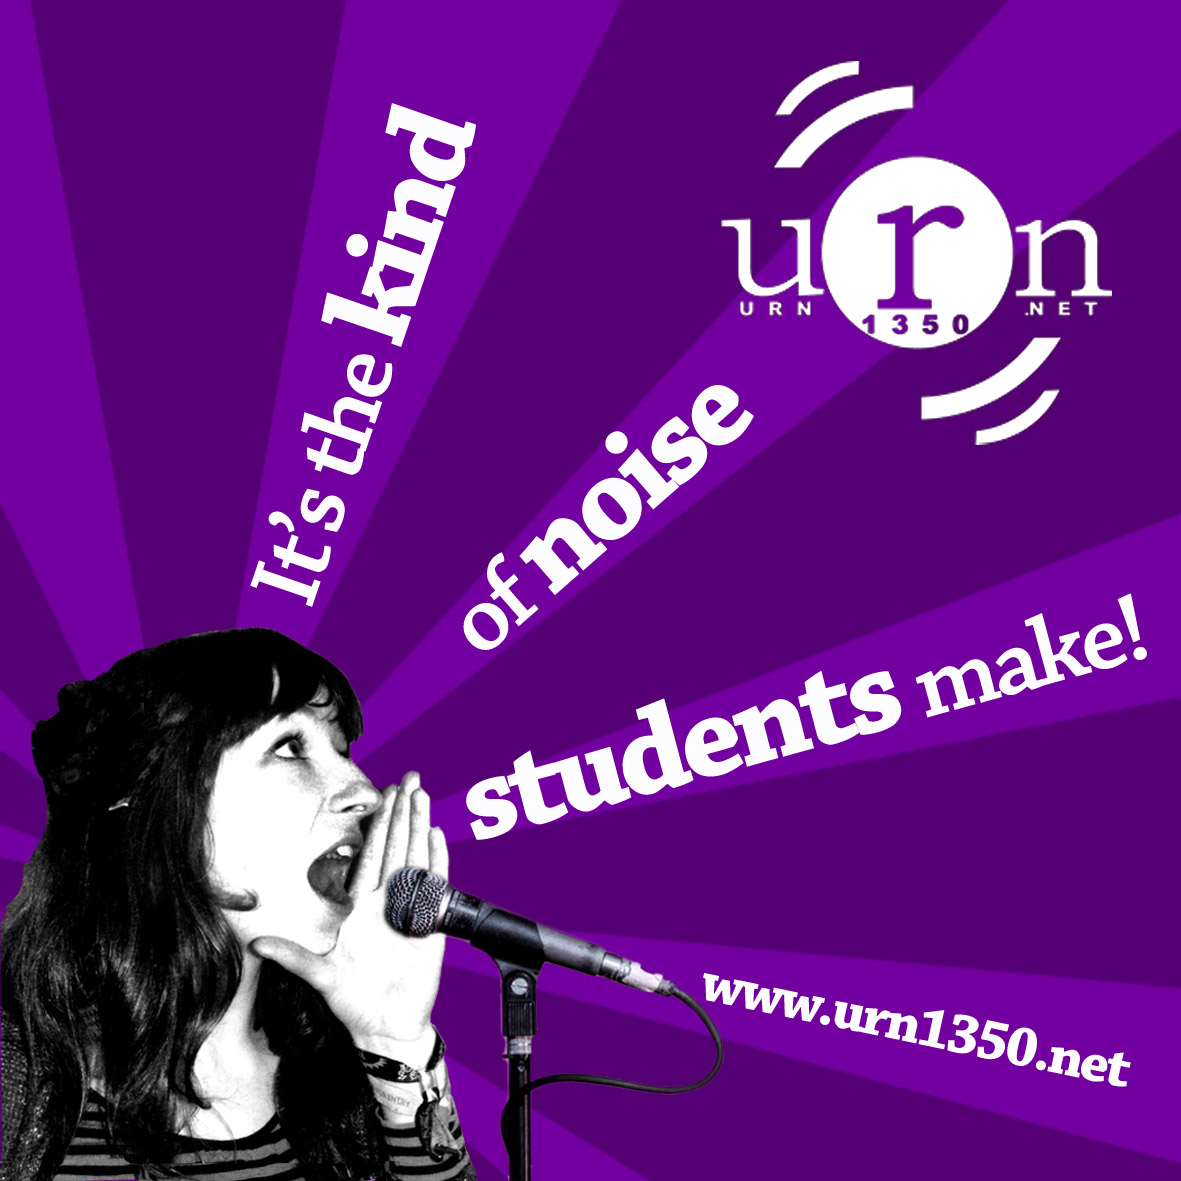 URN: the kind of noise students make